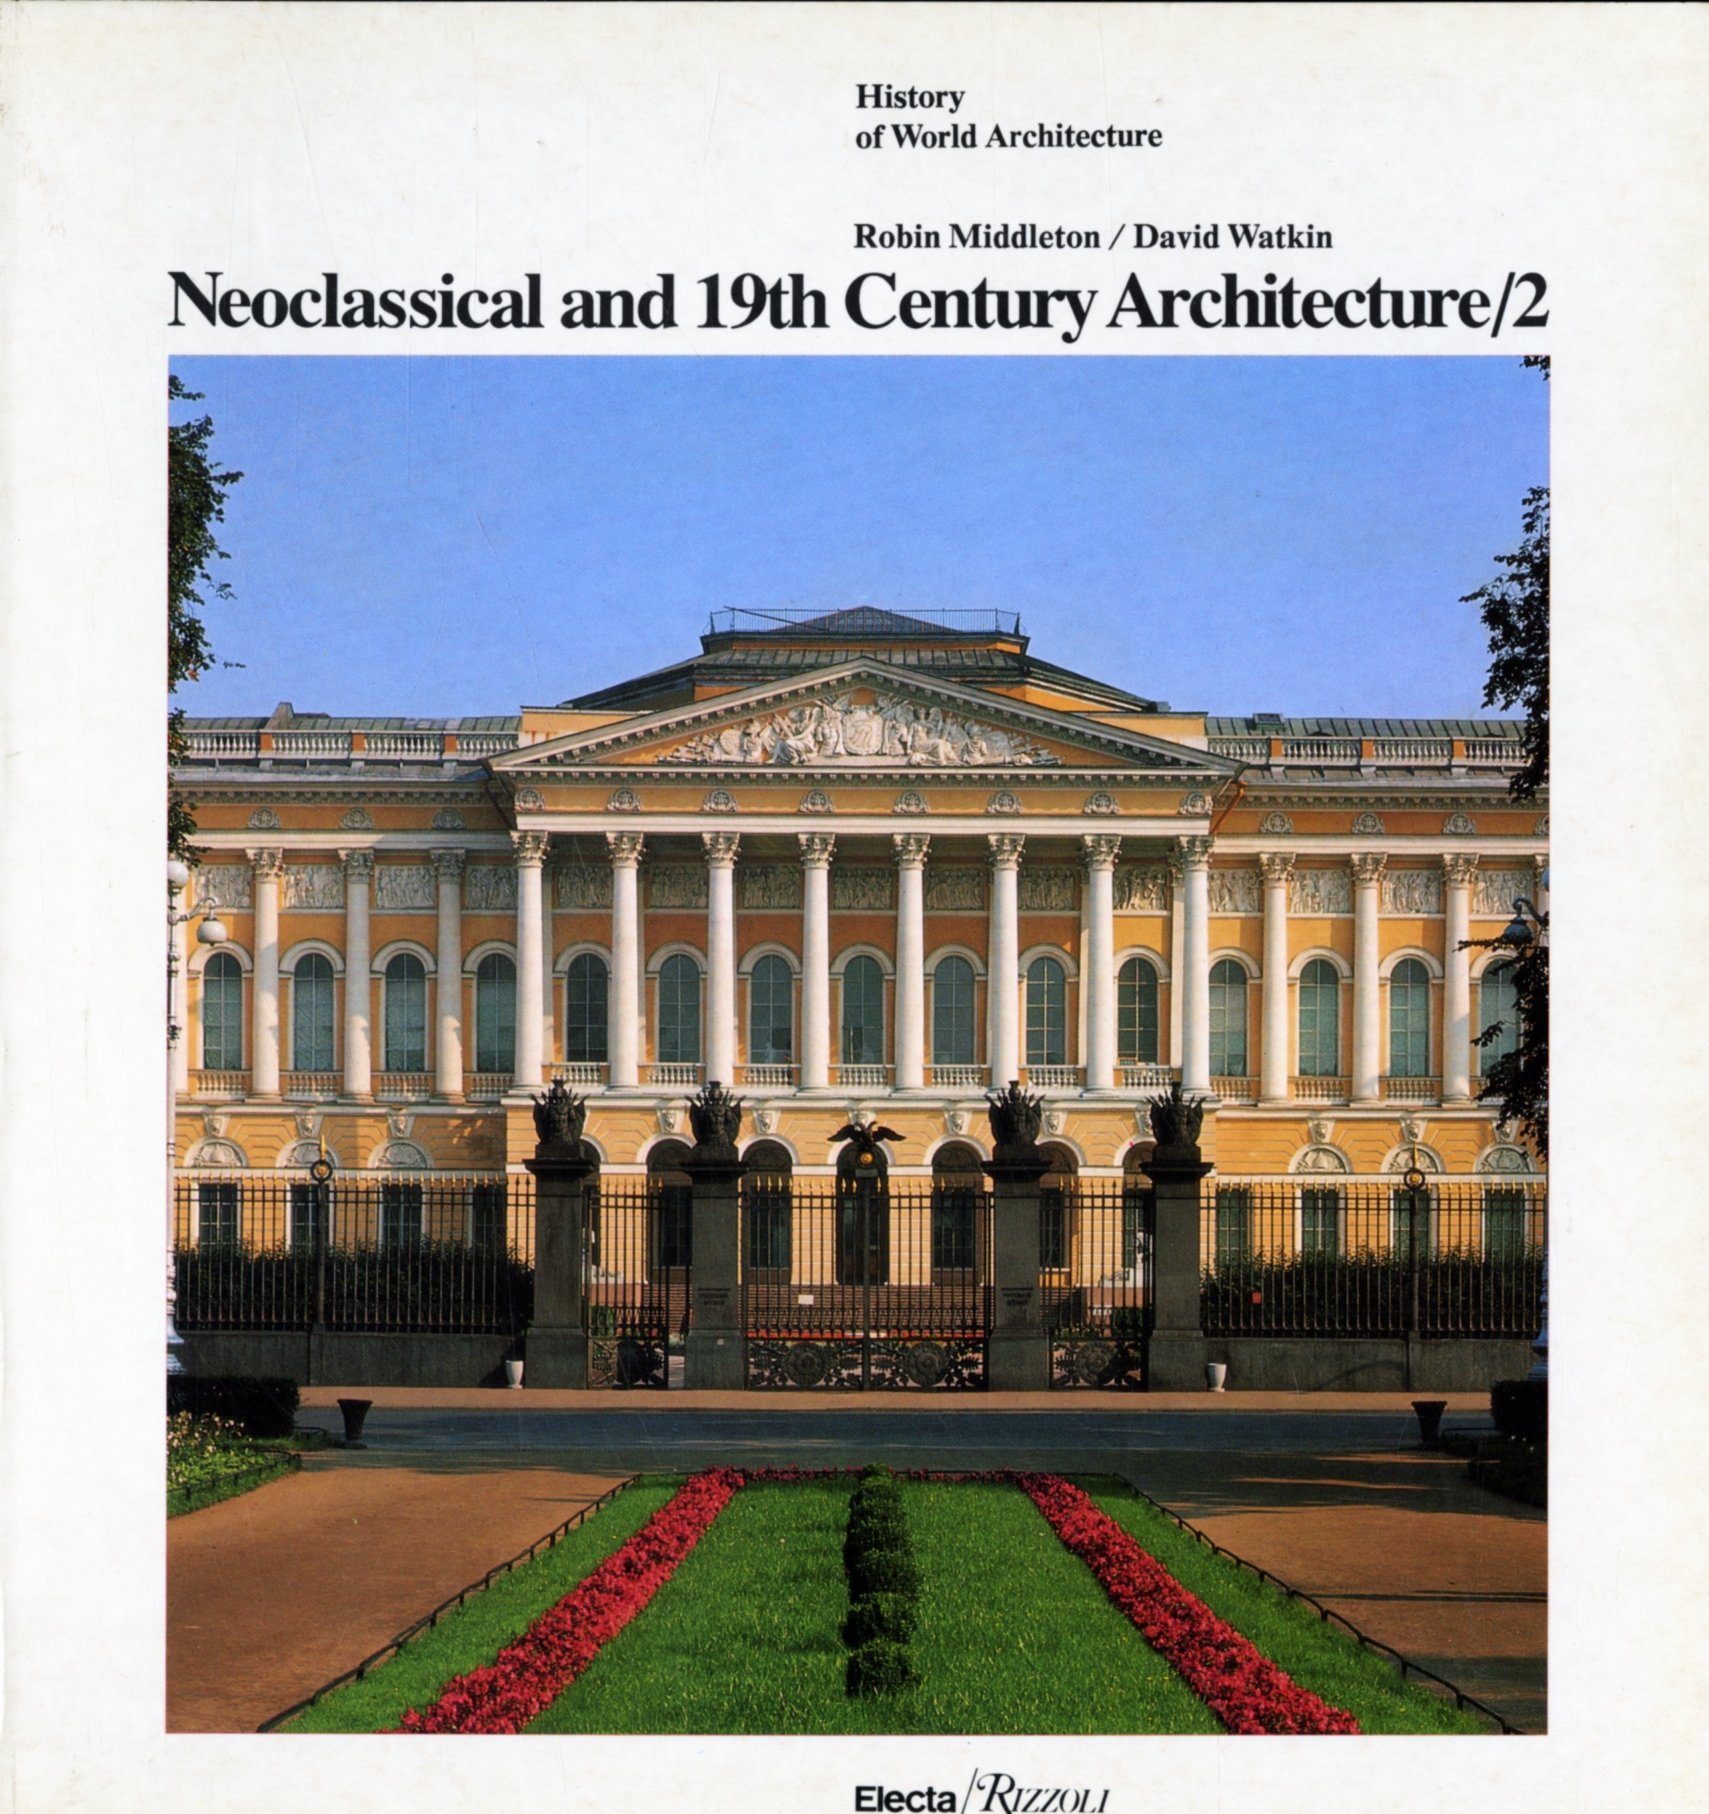 an analysis of the 19th century architecture Architecture and interior design from the 19th century  it interweaves design analysis language with art and architecture and offers a broad range of.